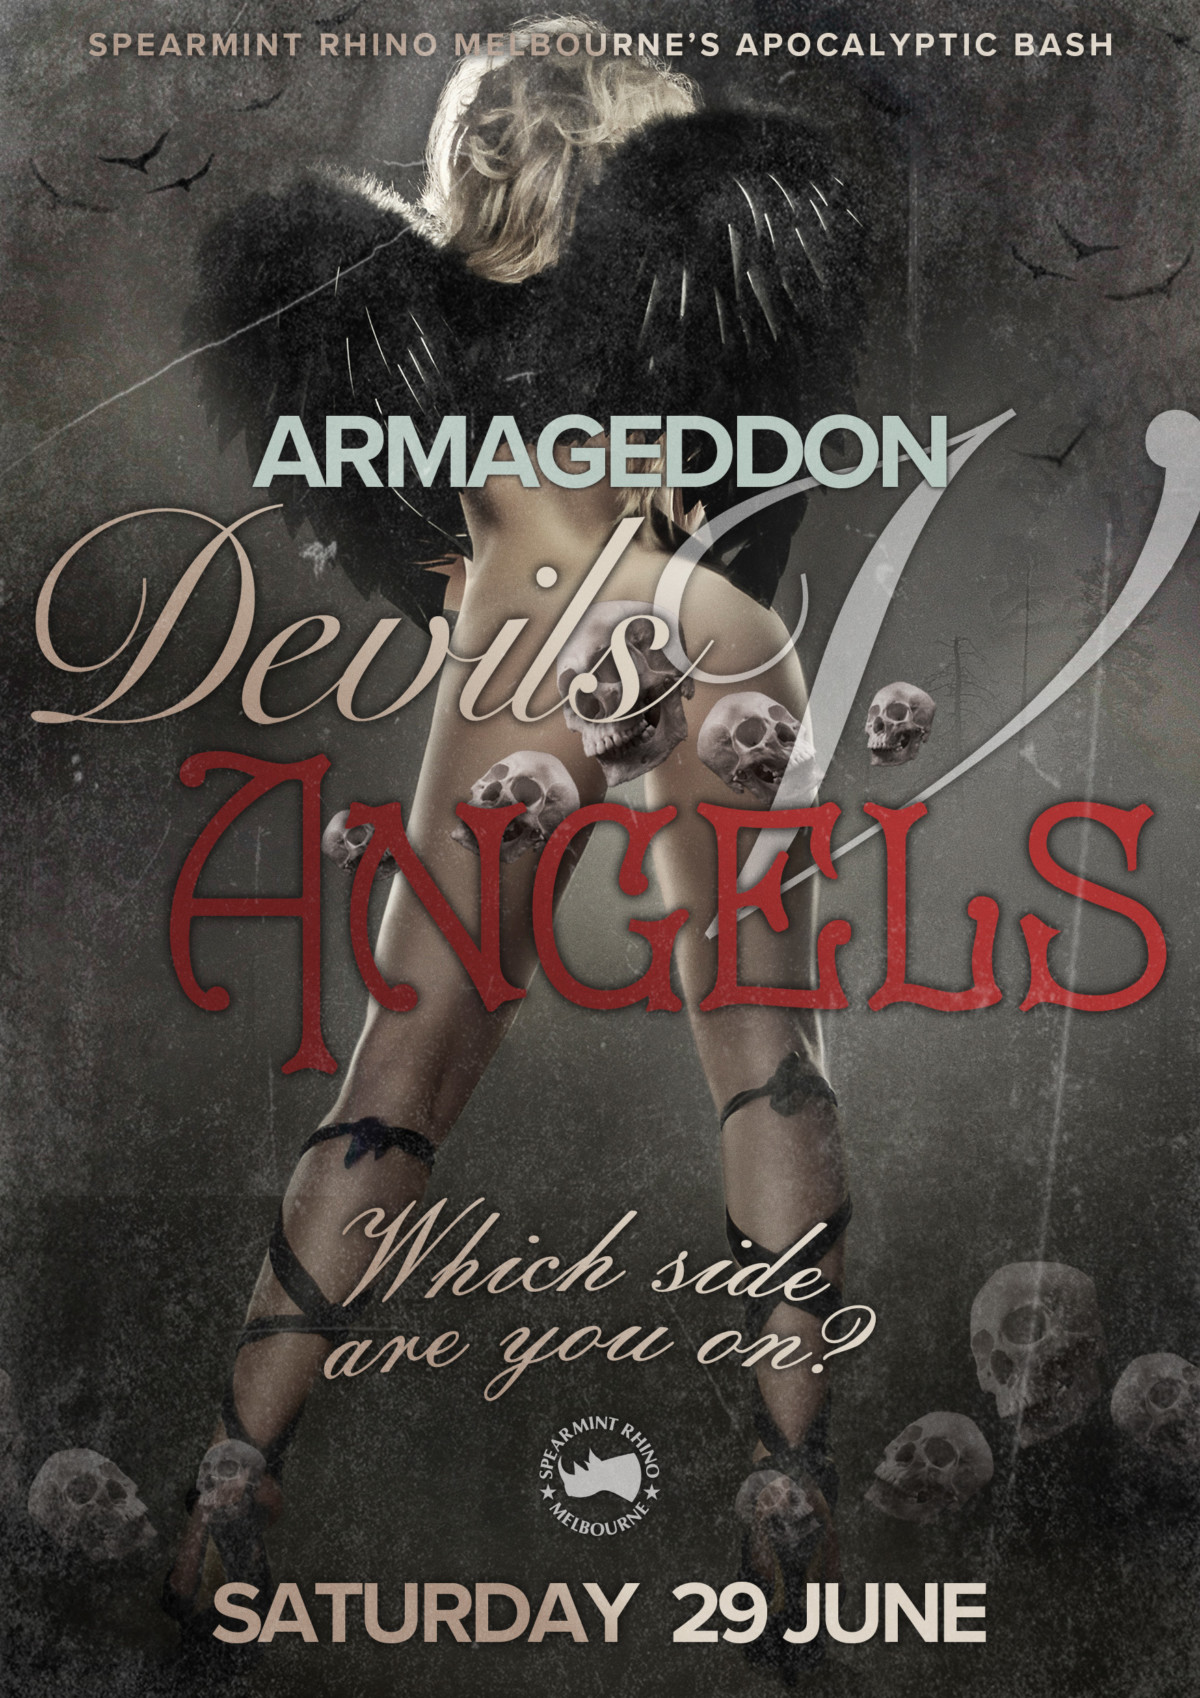 Devils v Angels